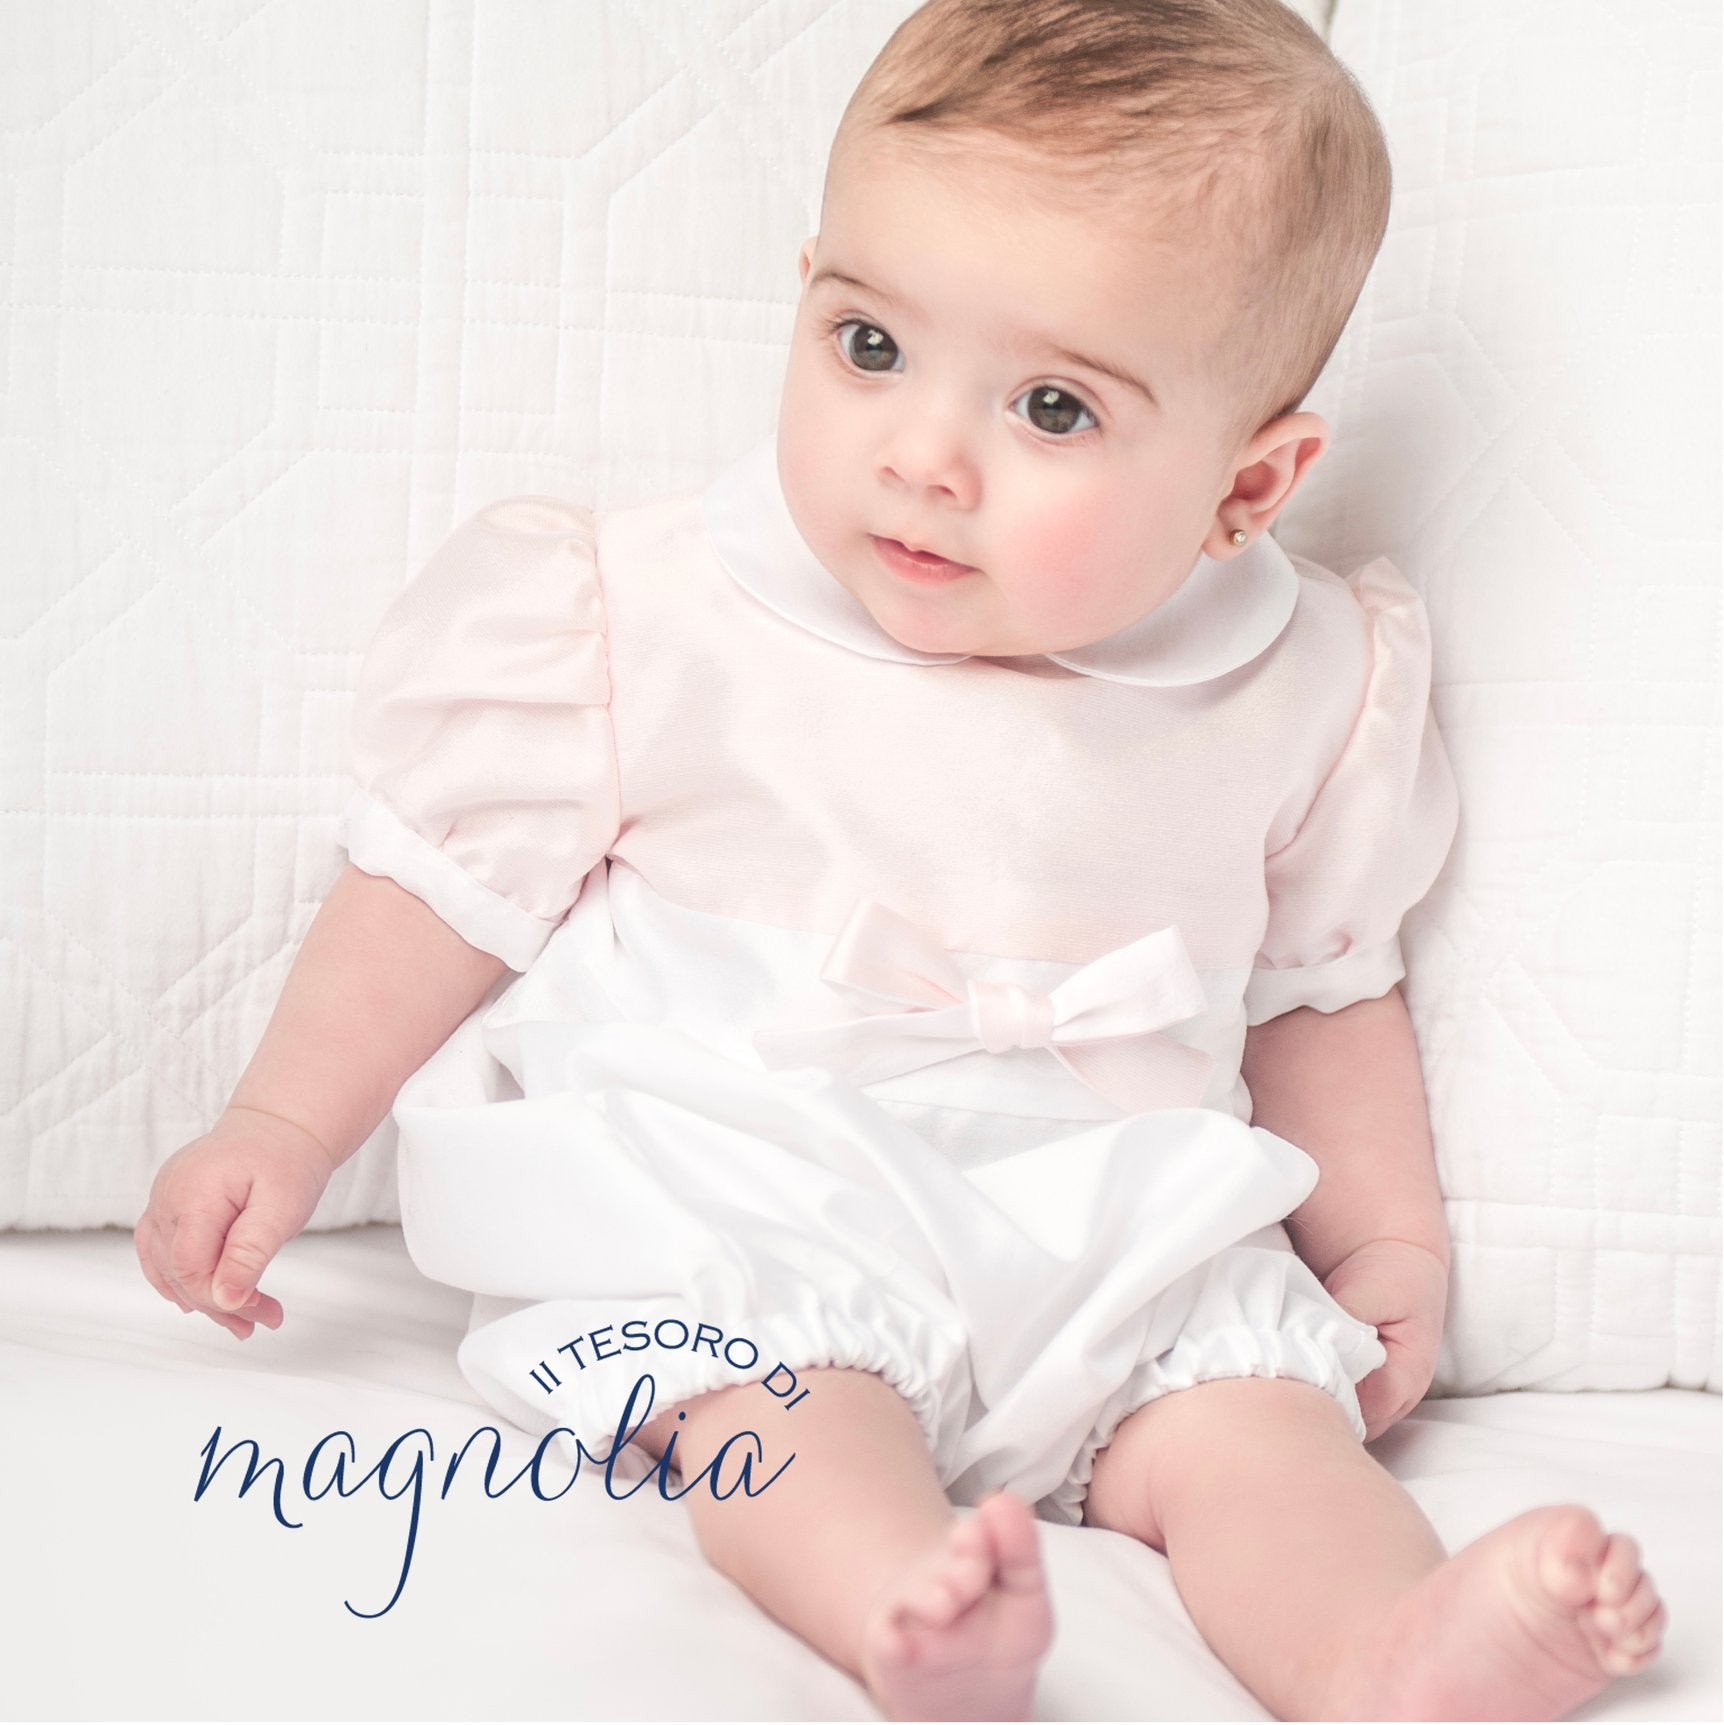 Magnolia Baby Layette - Pima Cotton Baby Clothes and Pajamas